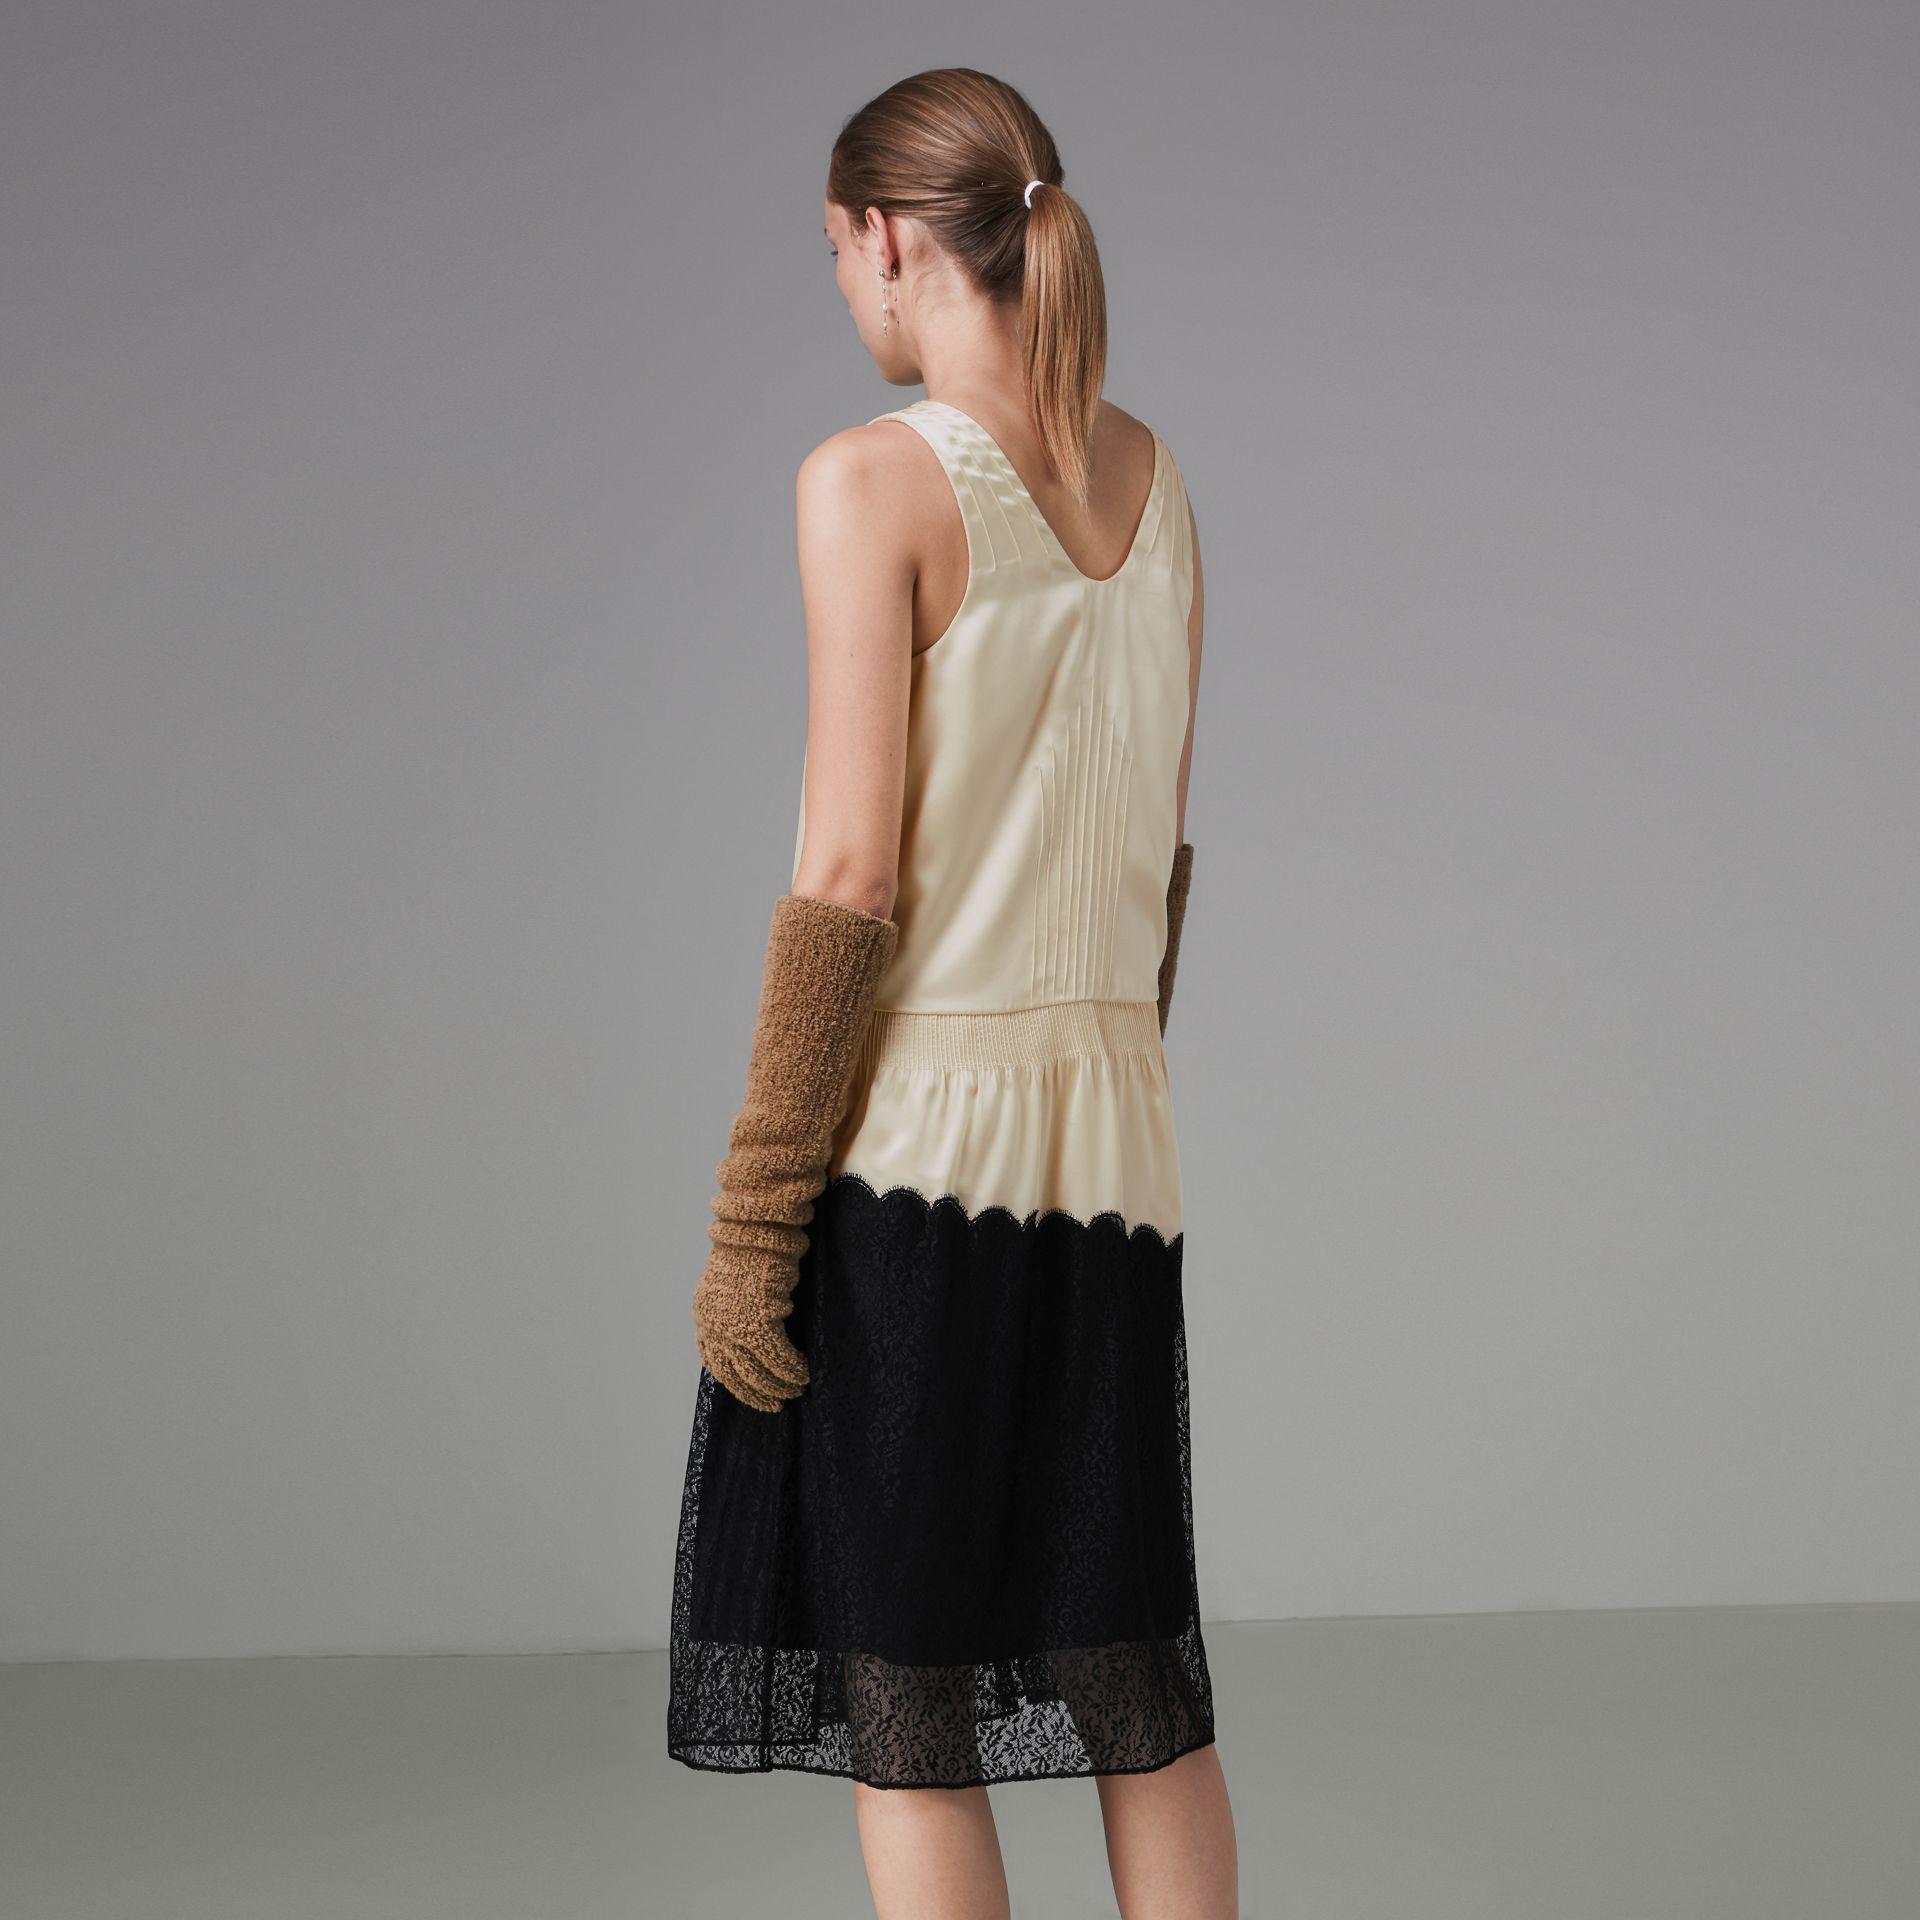 Silk Satin and Lace Sleeveless Dress in Cream - Women | Burberry Canada - gallery image 2